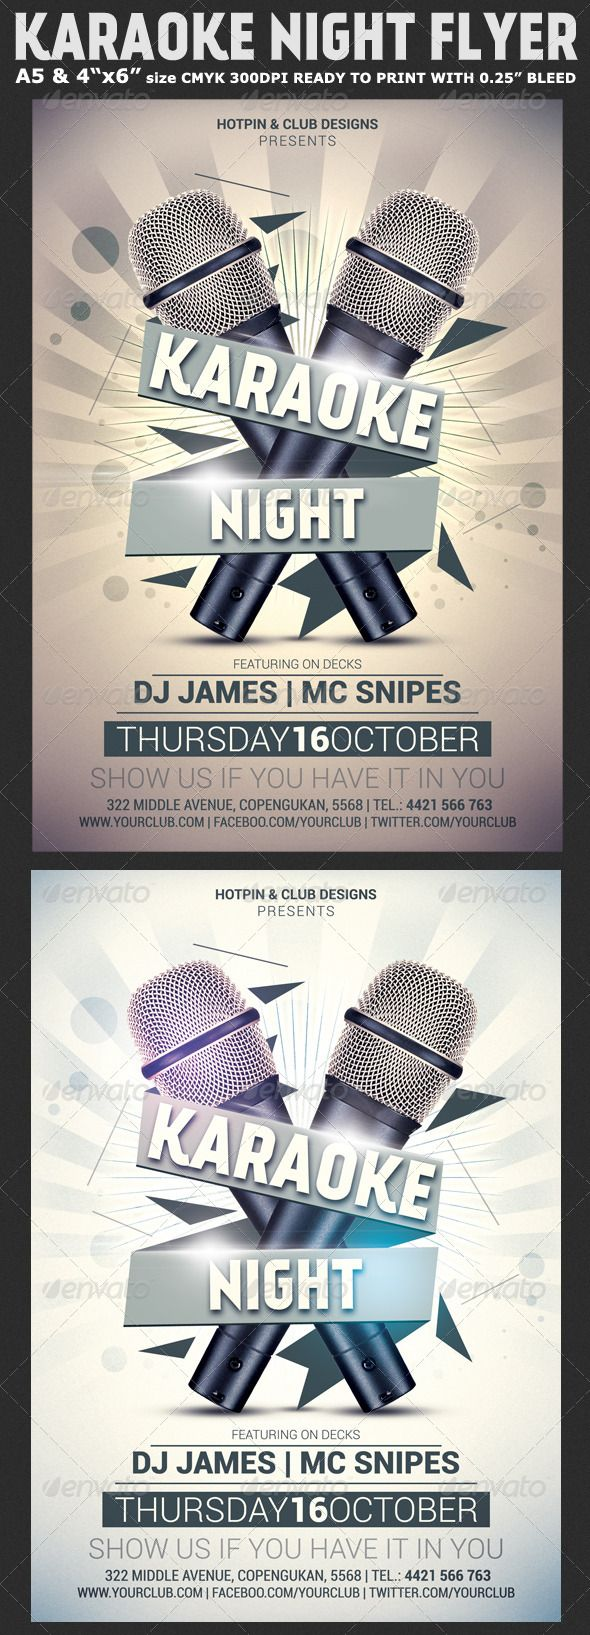 Karaoke Night Flyer Template  Advice Karaoke And Flyer Template